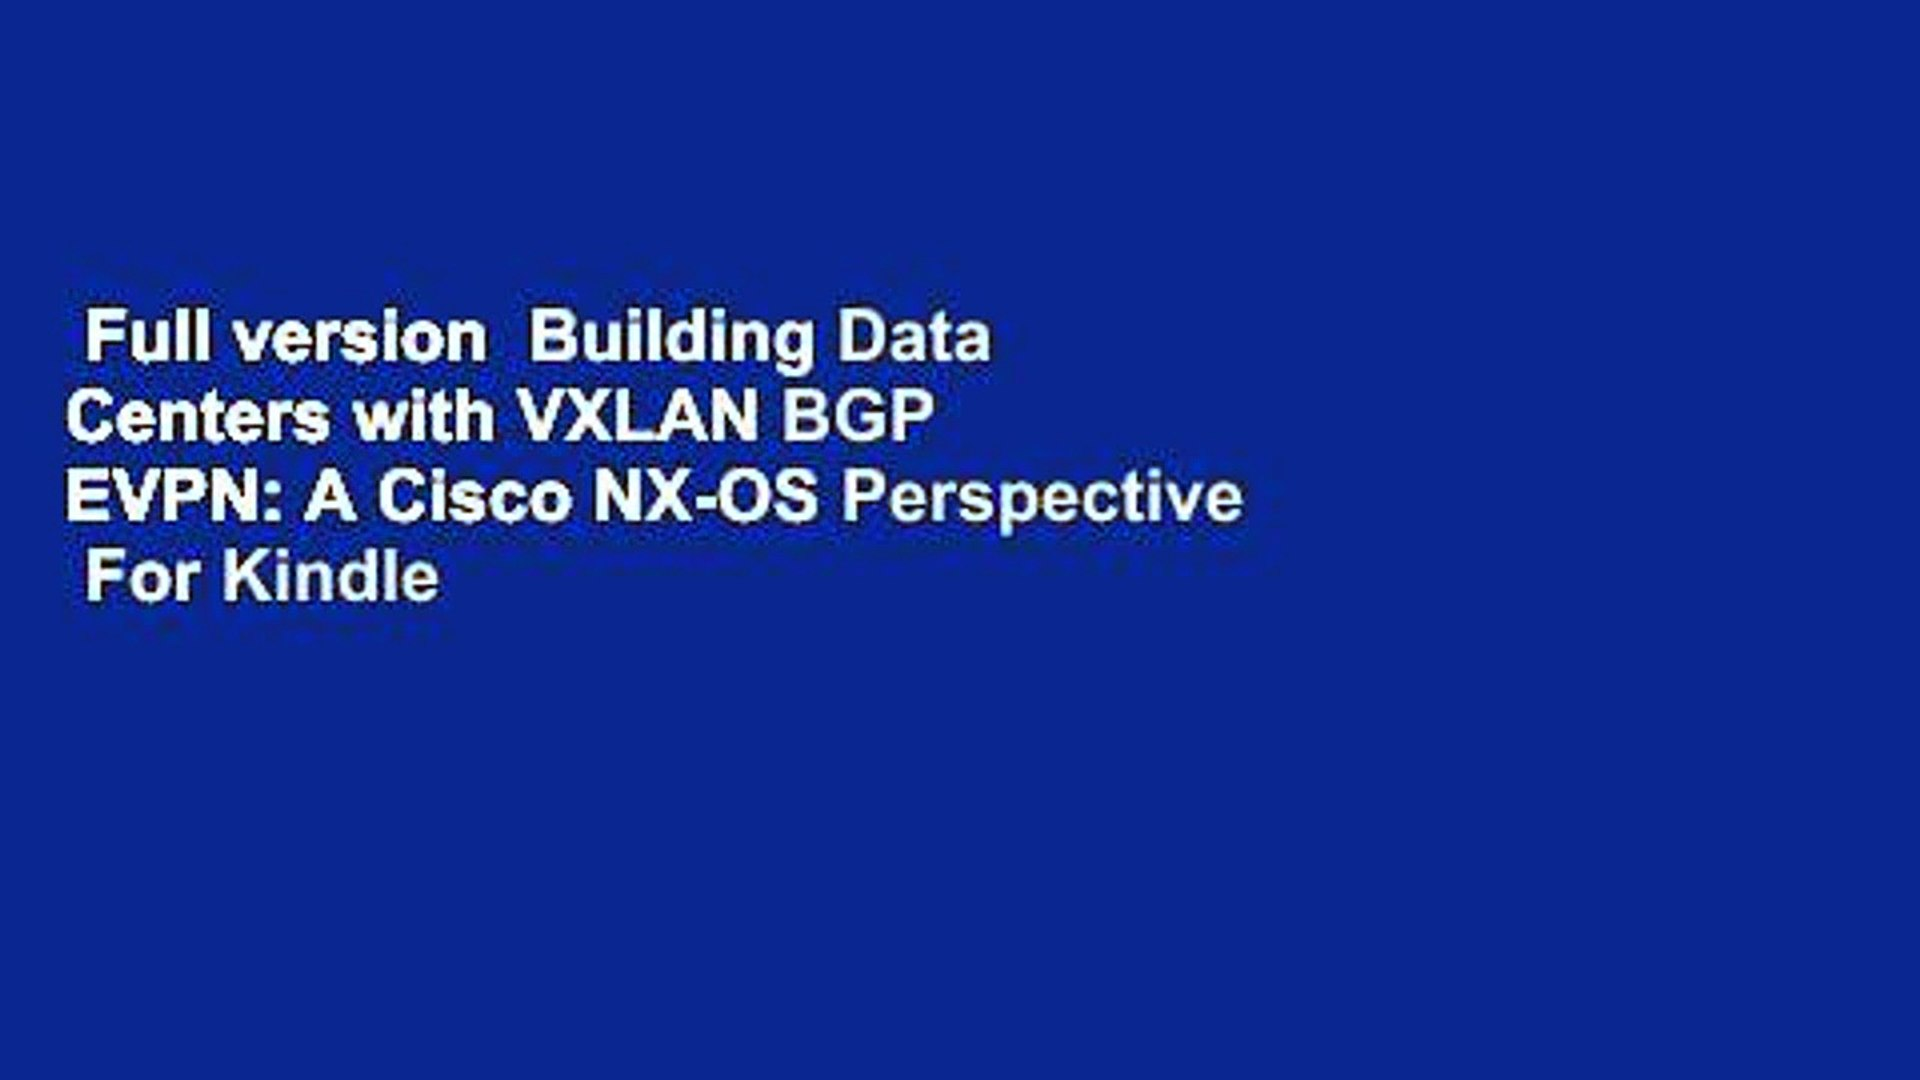 Full version Building Data Centers with VXLAN BGP EVPN: A Cisco NX-OS  Perspective For Kindle